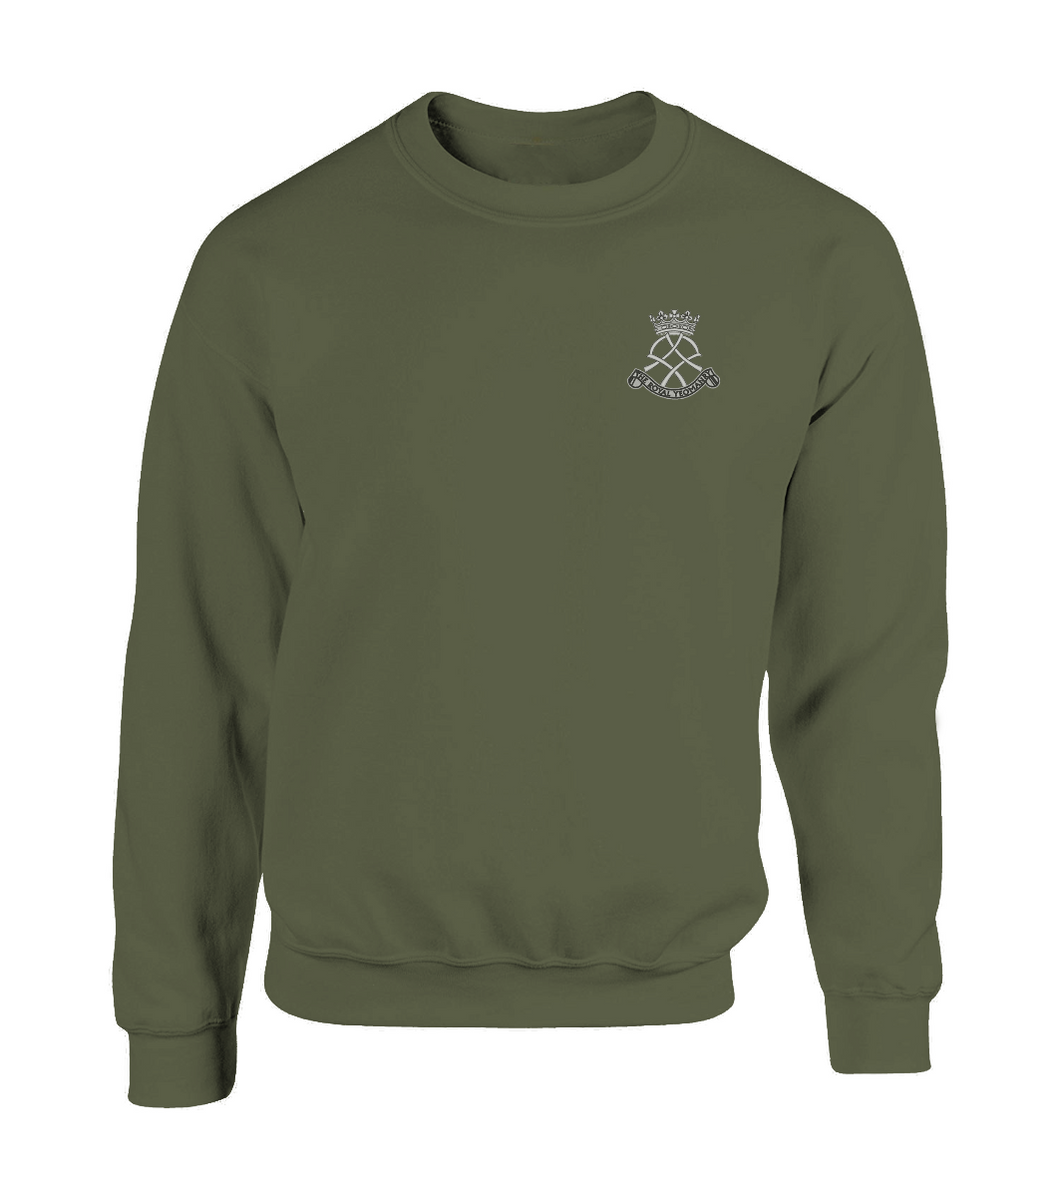 Embroidered Royal Yeomanry Sweatshirt Olive Green